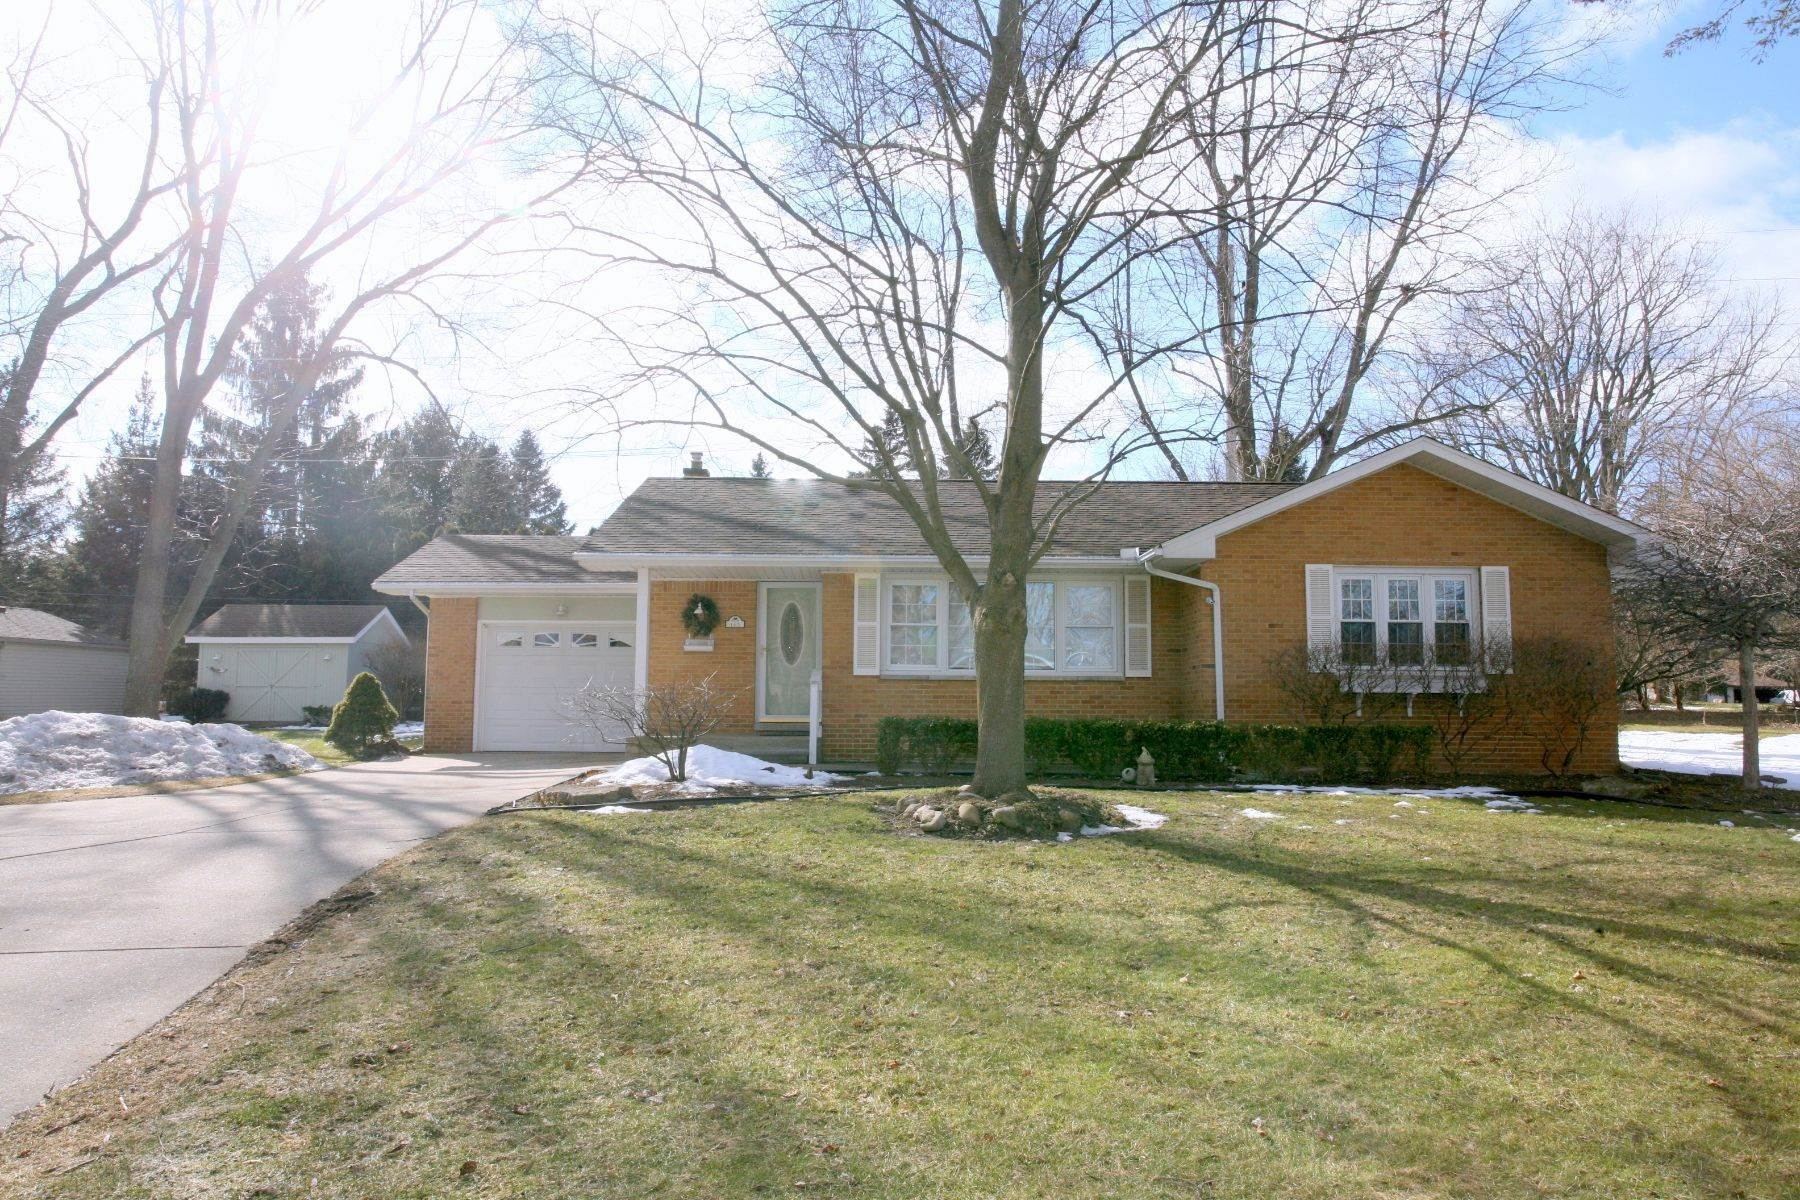 Single Family Homes for Sale at Clarkston 145 N Holcomb Rd Clarkston, Michigan 48346 United States